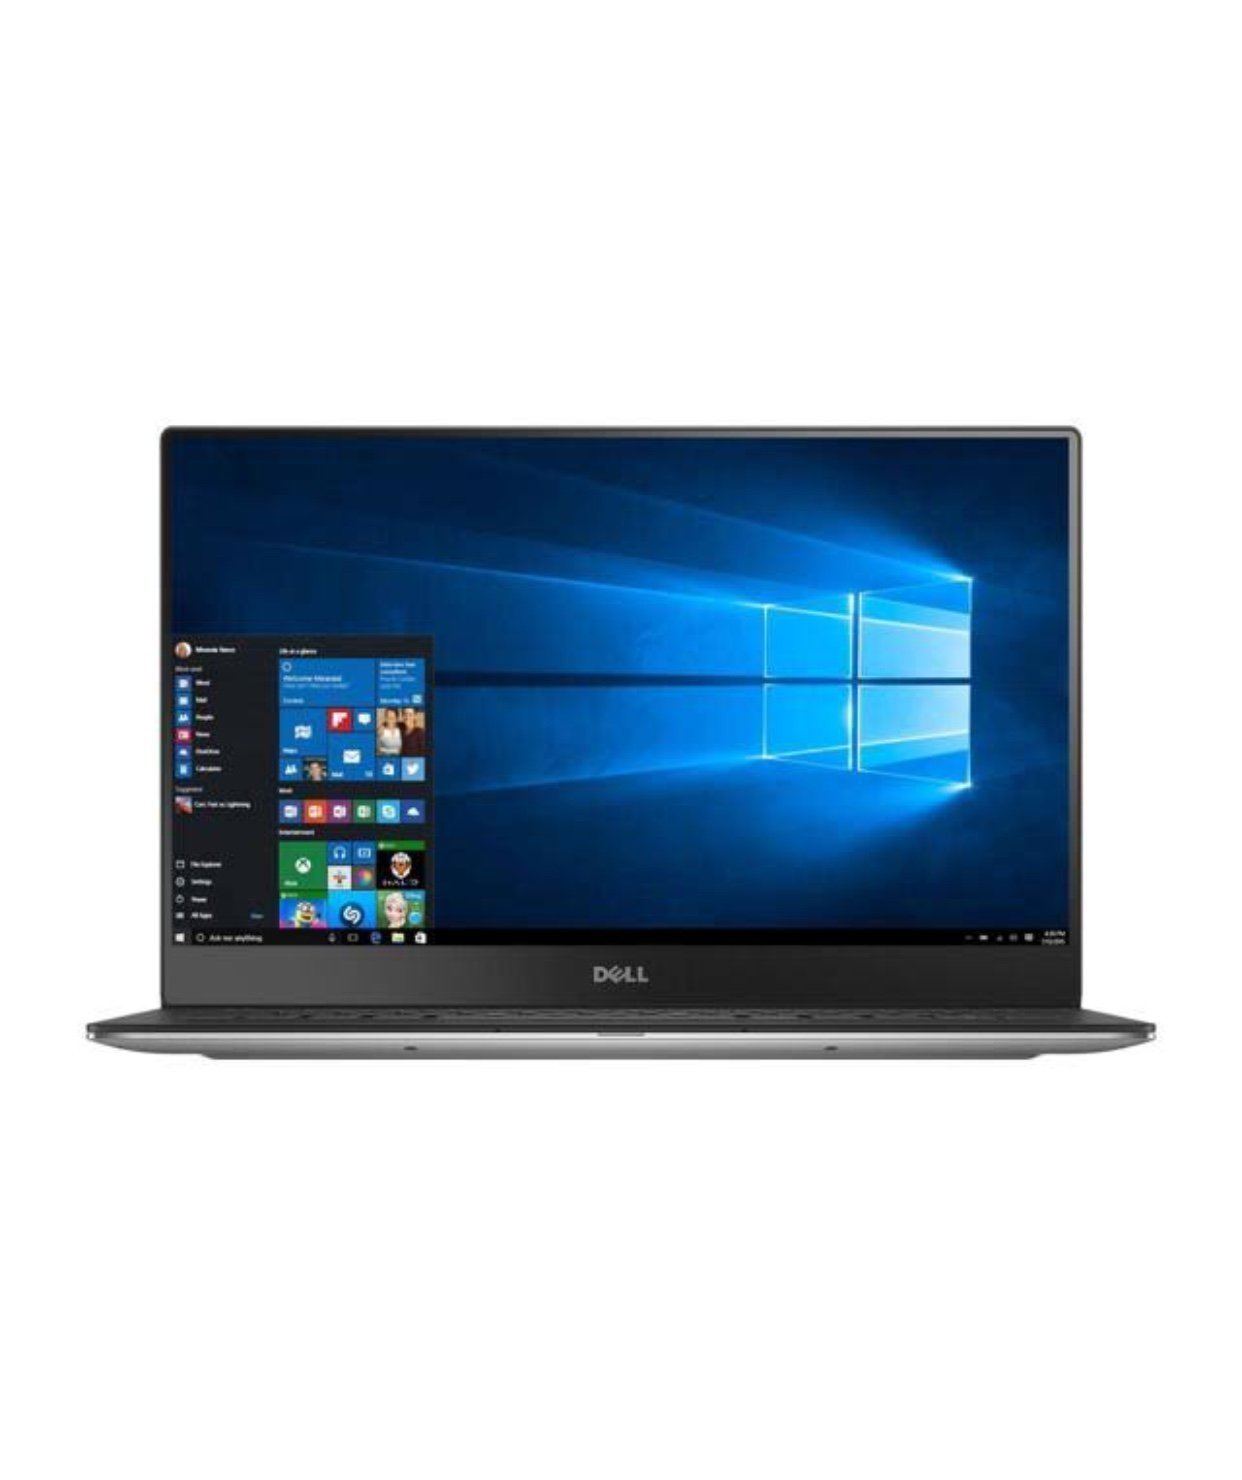 Dell XPS 13 9360 best laptop